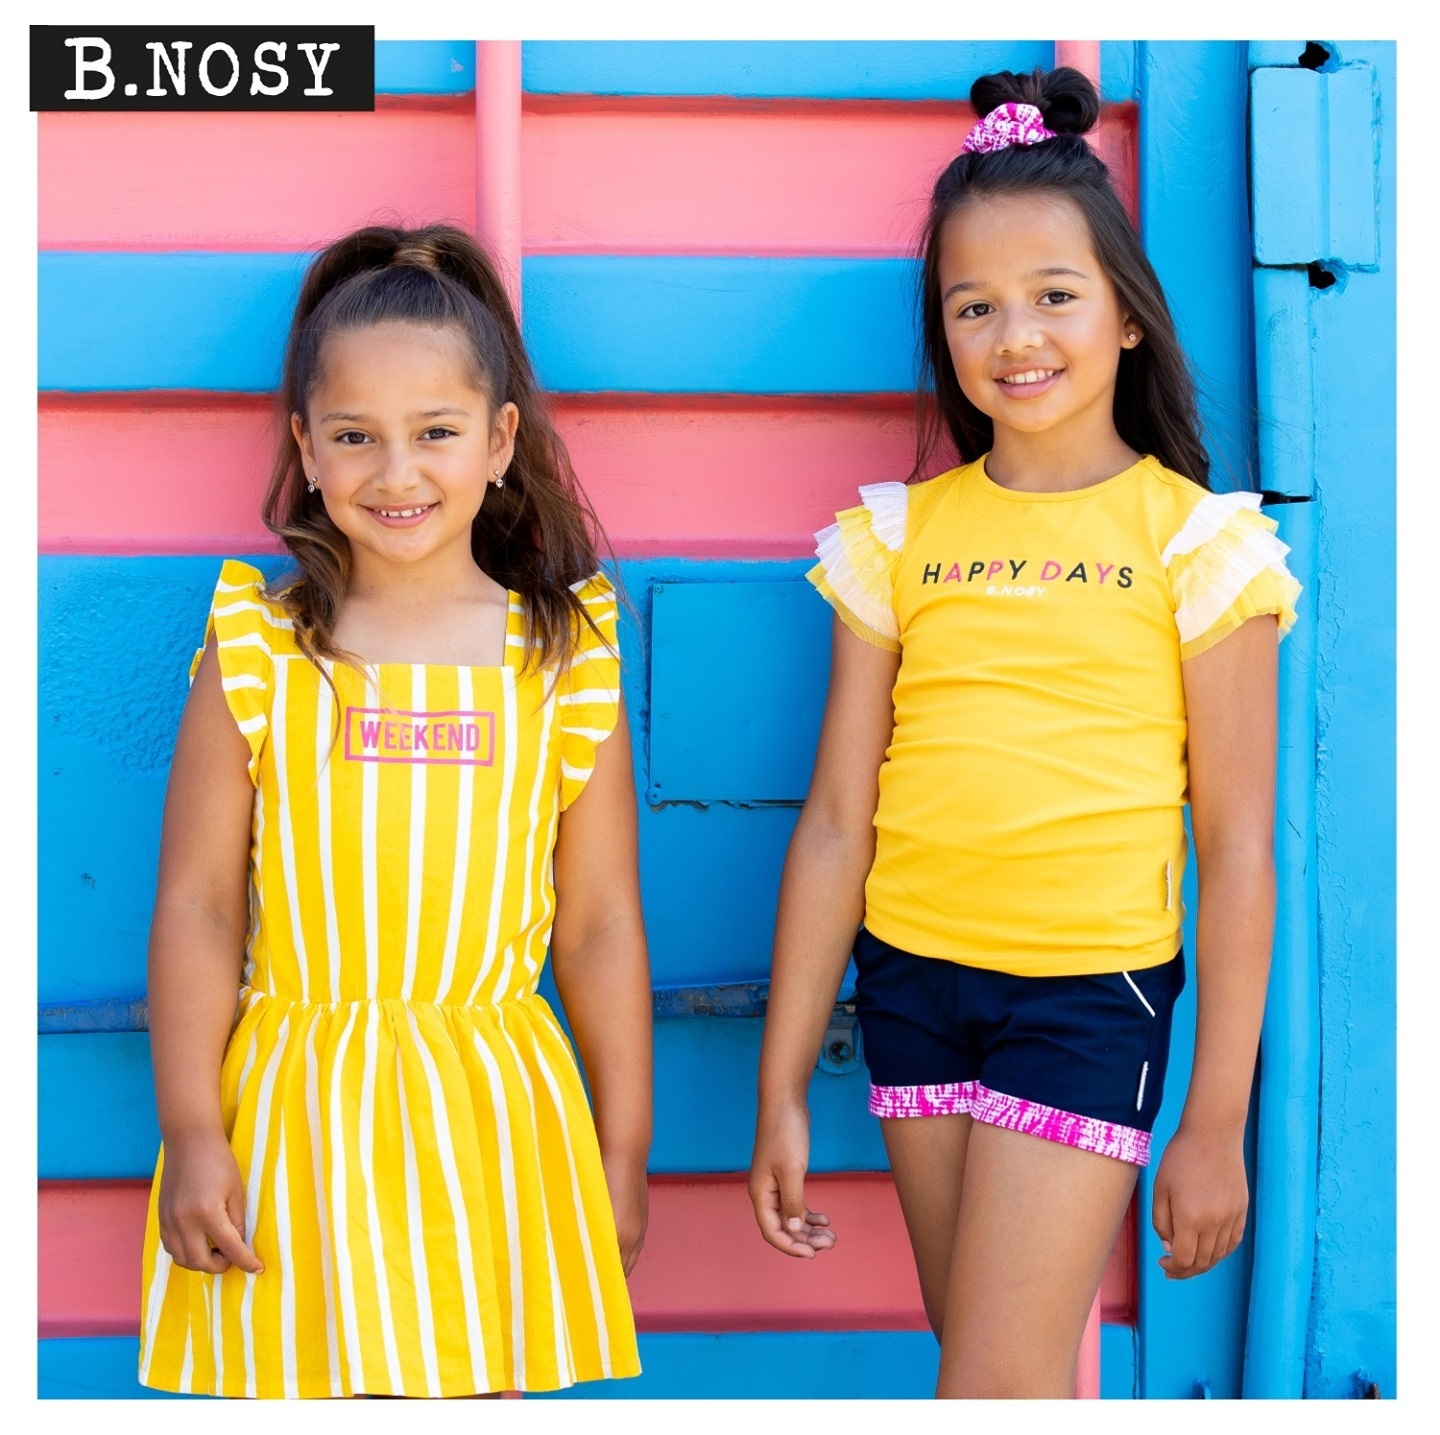 HAPPY DAYS!⁠ #bnosygirls #sisters #kidswear #fashiongirls #newcollection #loveyellow #weekendvibes #nowavailable #letsshop #summercollection #inspiration #newoutfit